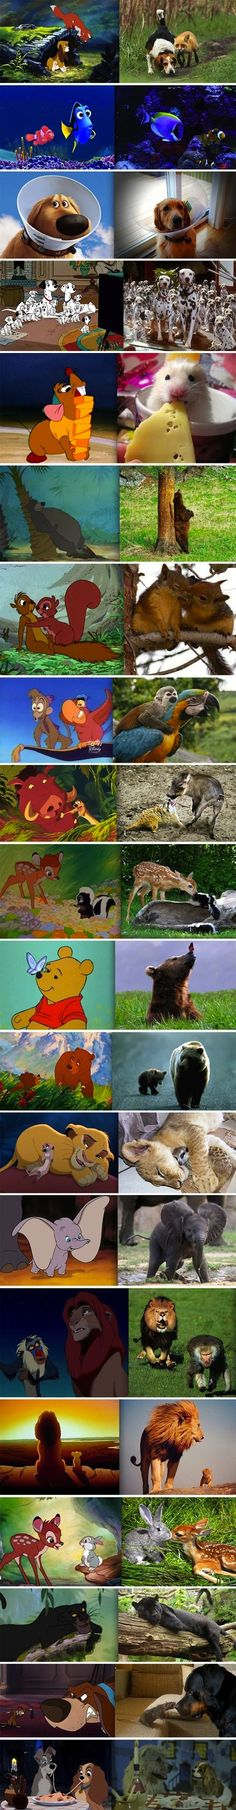 Disney Characters in Real Life.